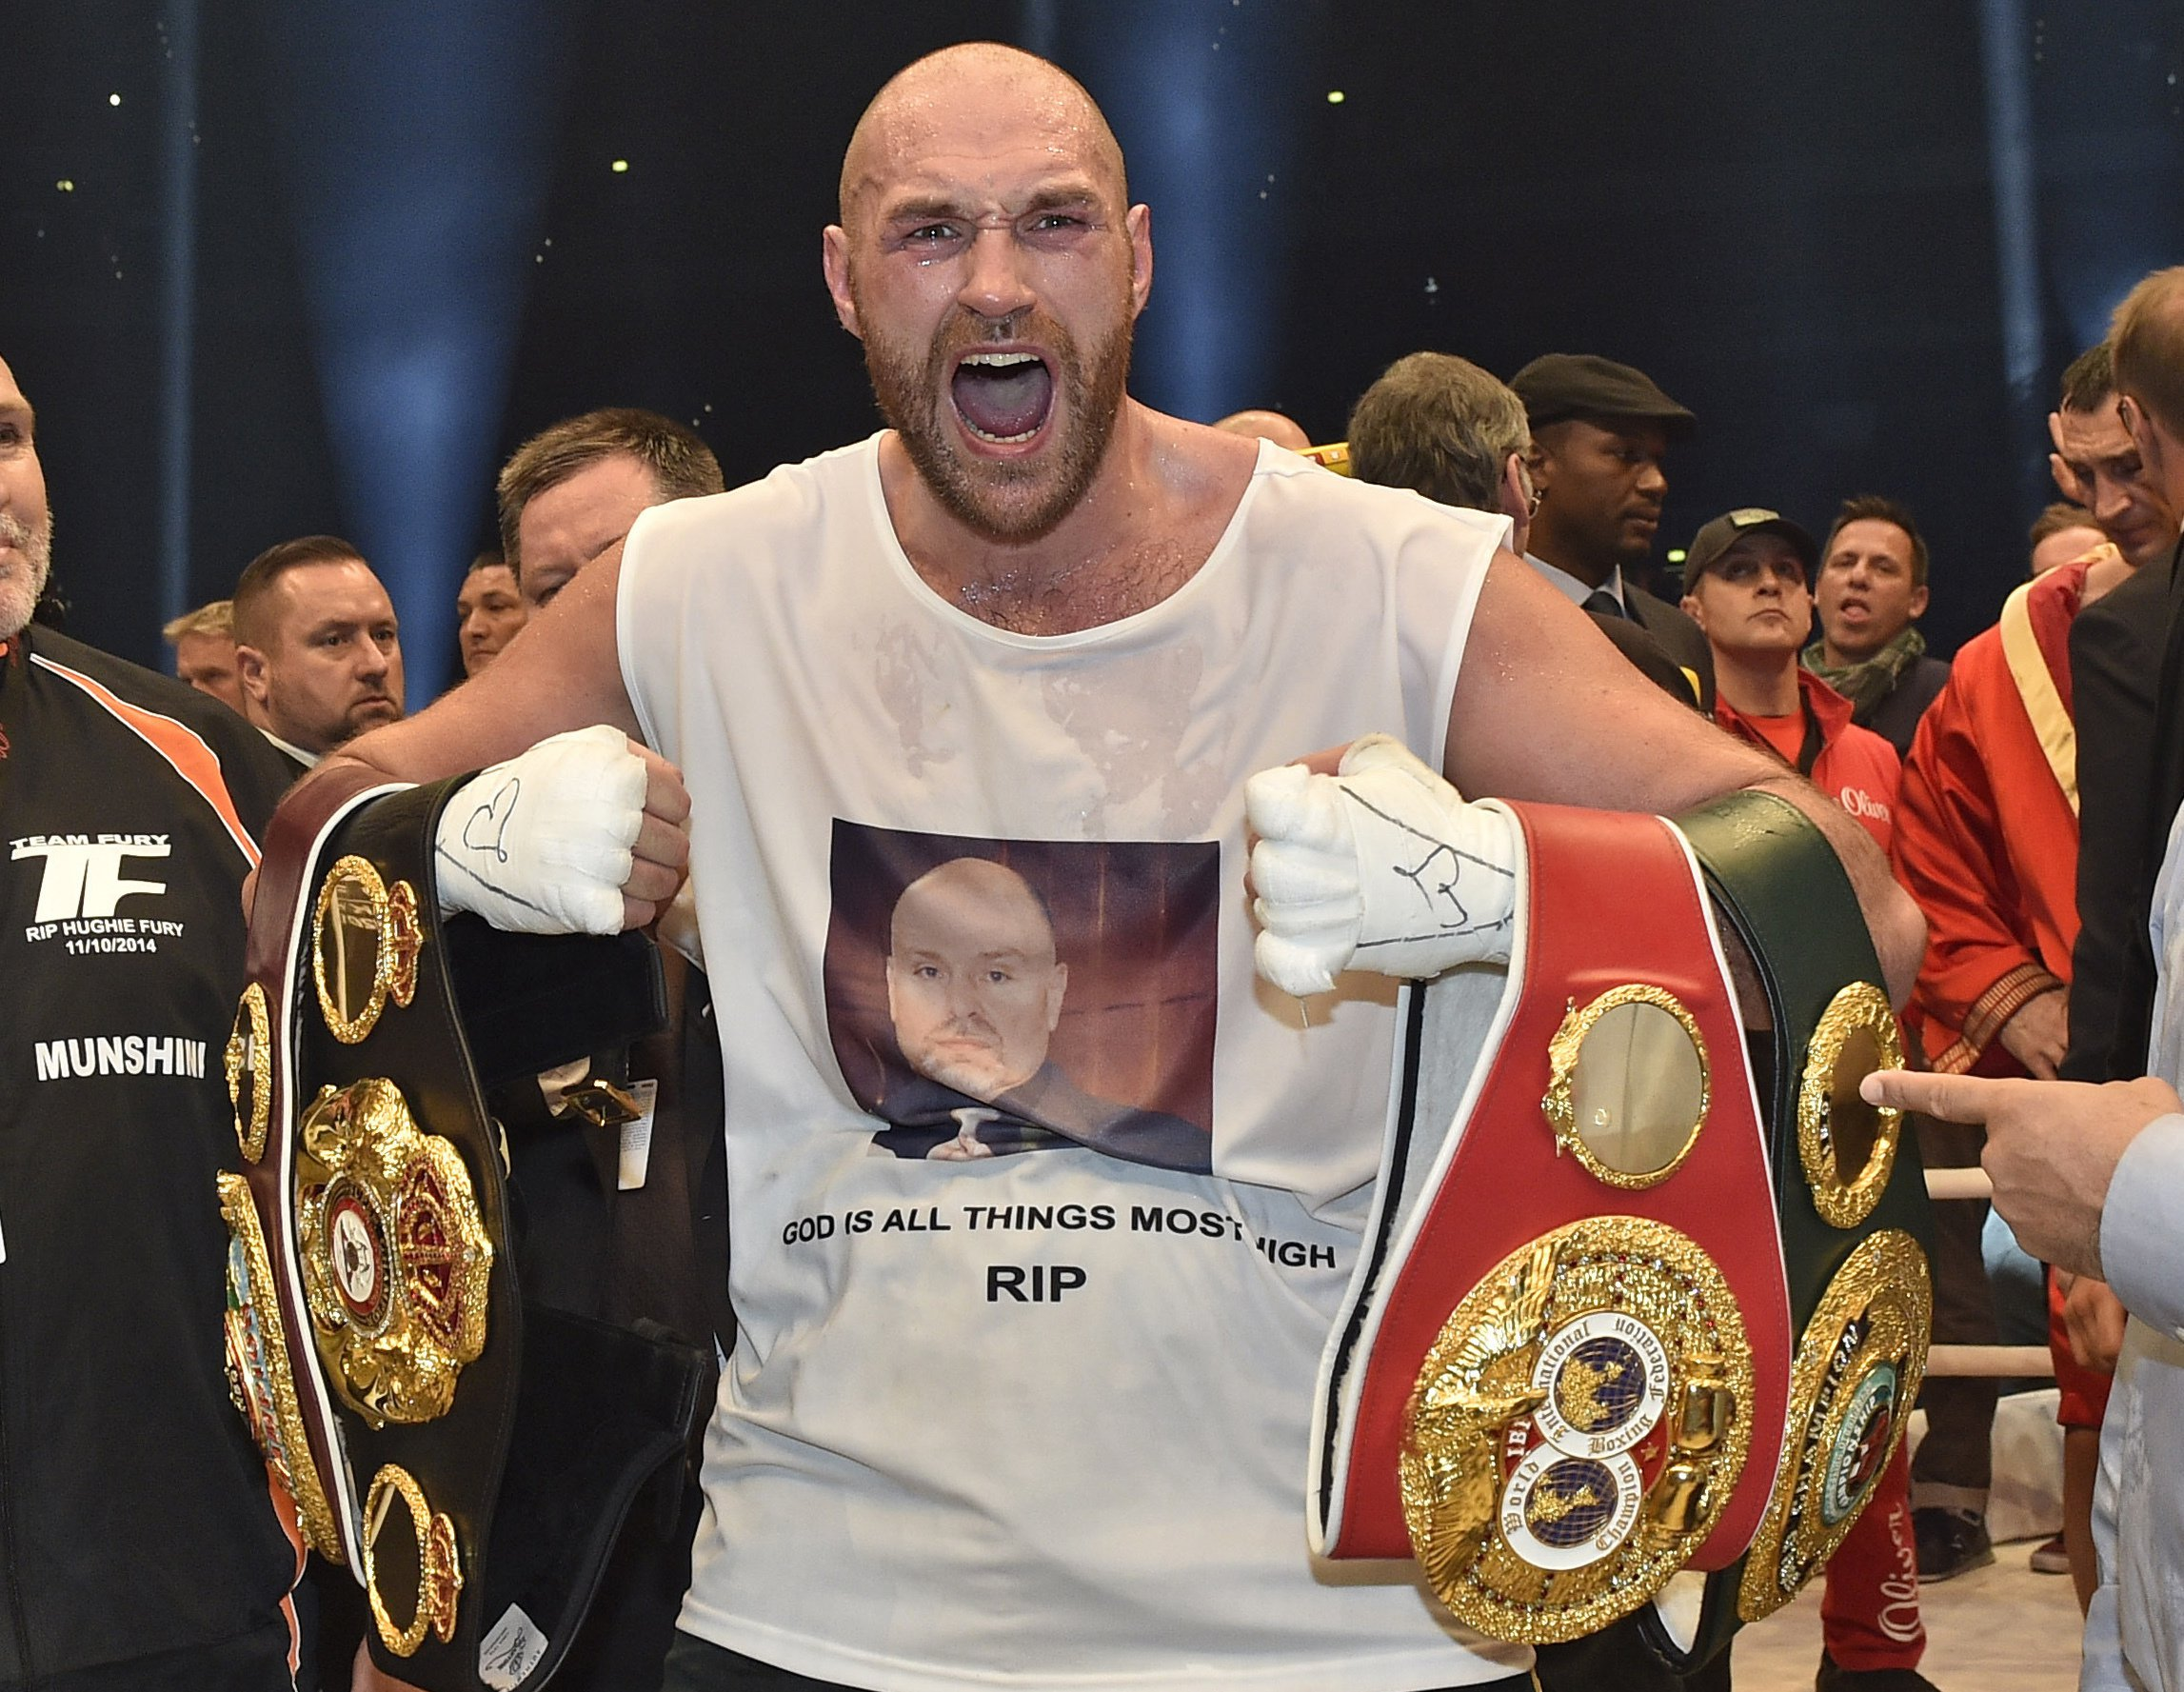 Tyson Fury compares himself to Usain Bolt and Ferrari: 'Am I really that fast!'